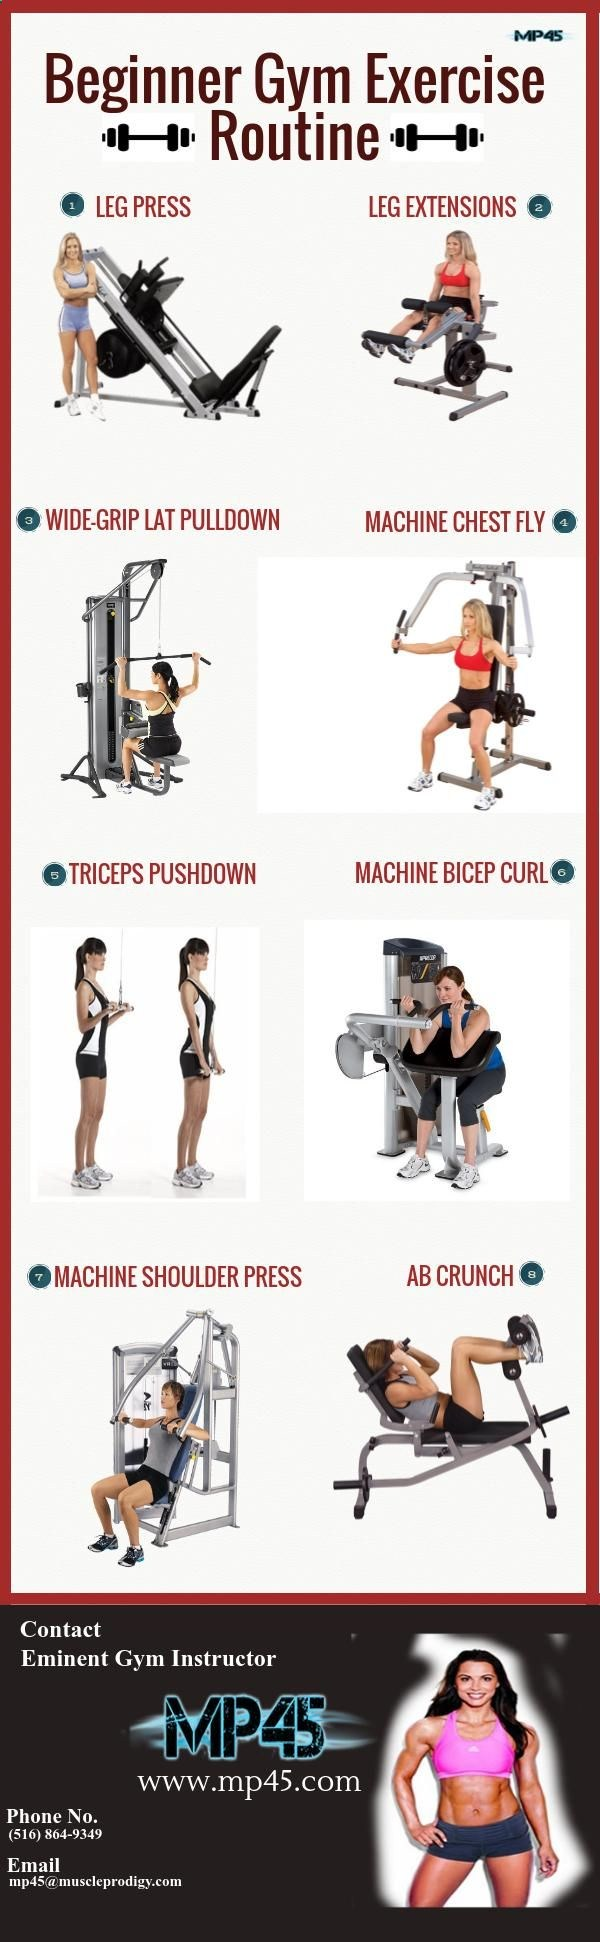 #MP45 gives you a chance to follow online #musclebuildingprogram and highly effective for adult fitness level, including women and men beginners! This gym workout routine has helped hundreds of gym beginners to start and enjoy health fitness workout training sessions.